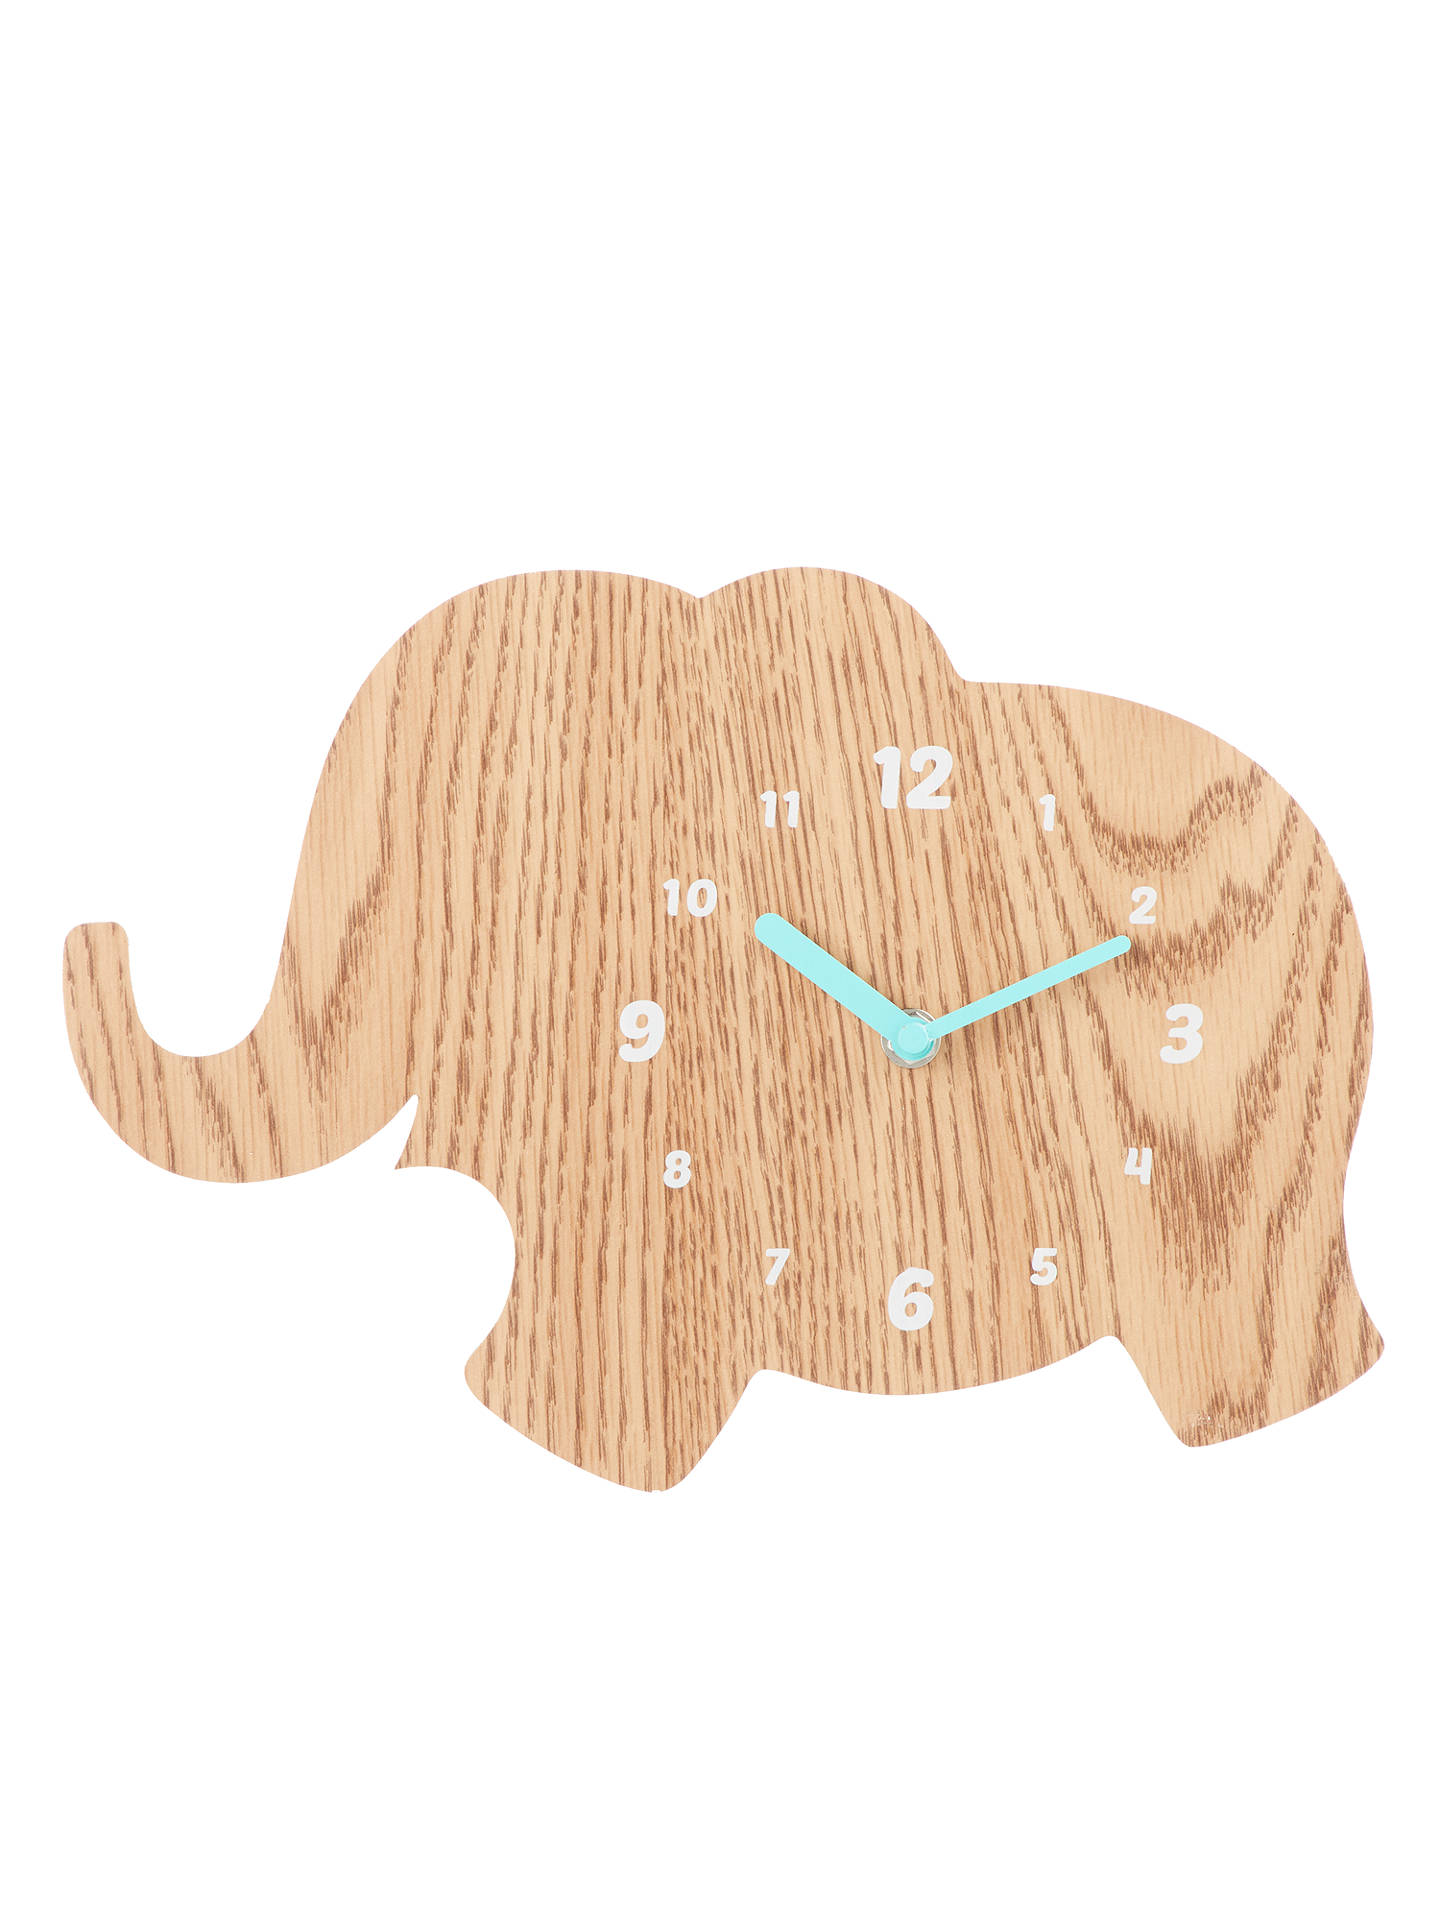 BuyJohn Lewis & Partners Elephant Clock, Natural Online at johnlewis.com